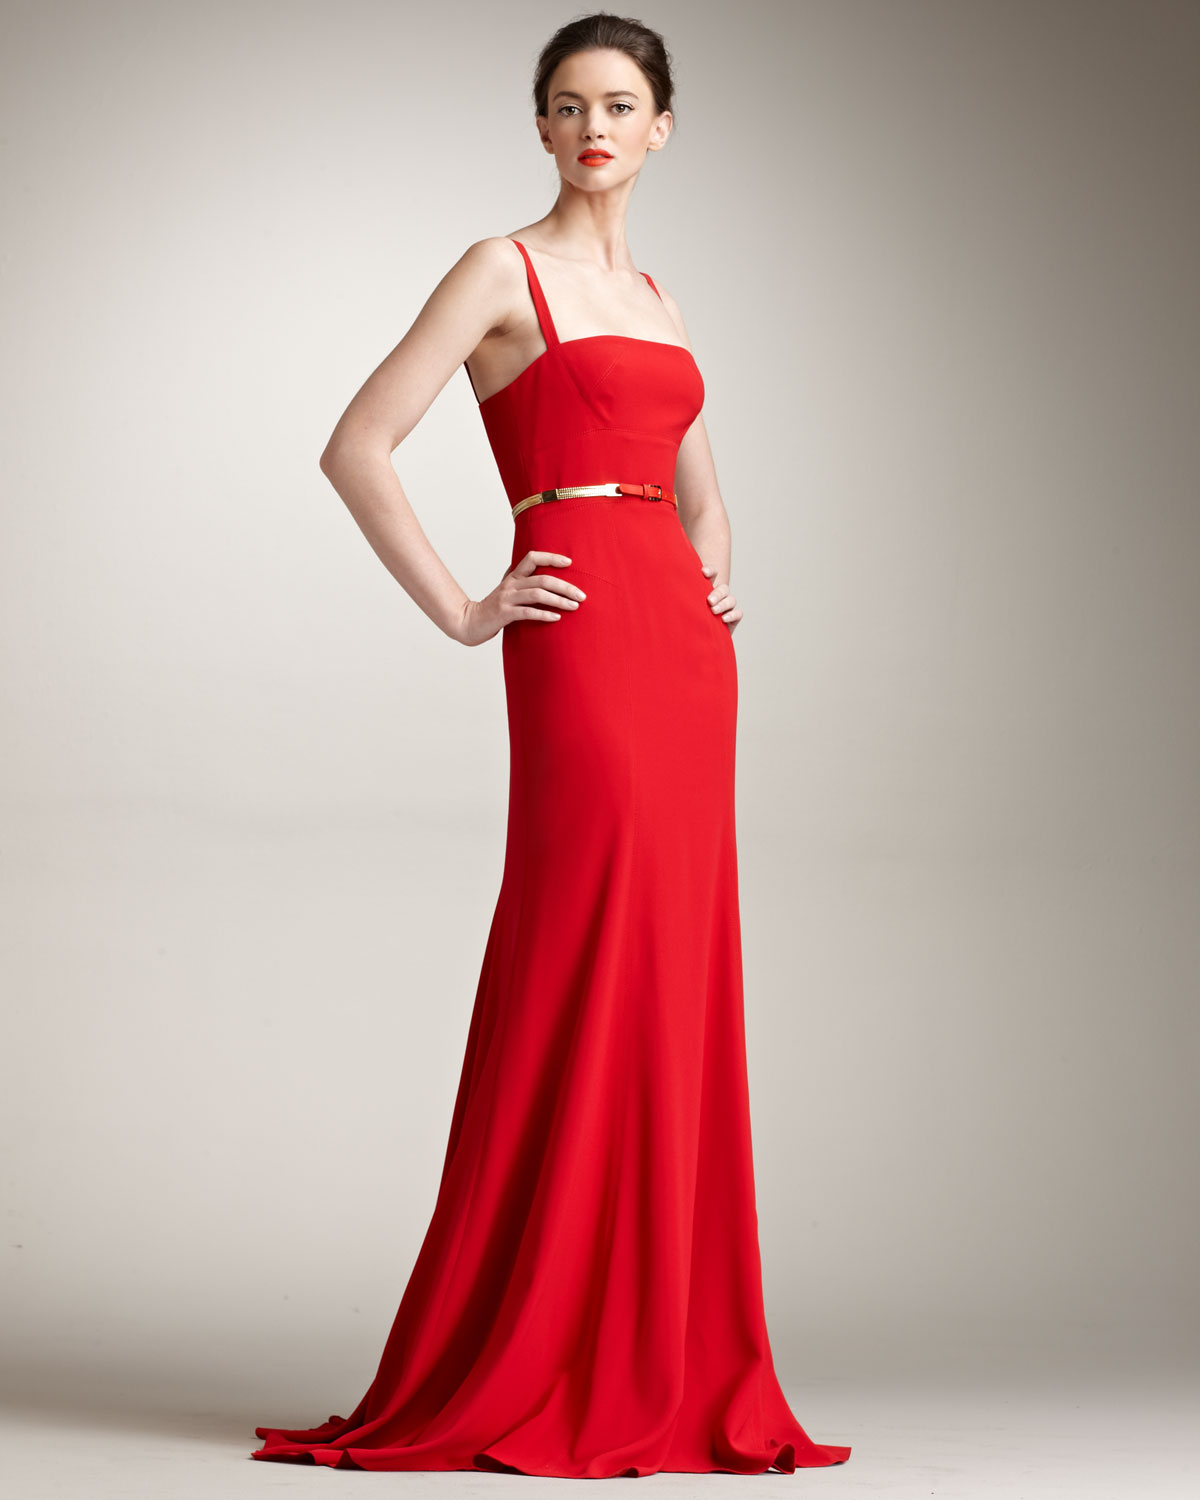 fitted red evening gowns - photo #33